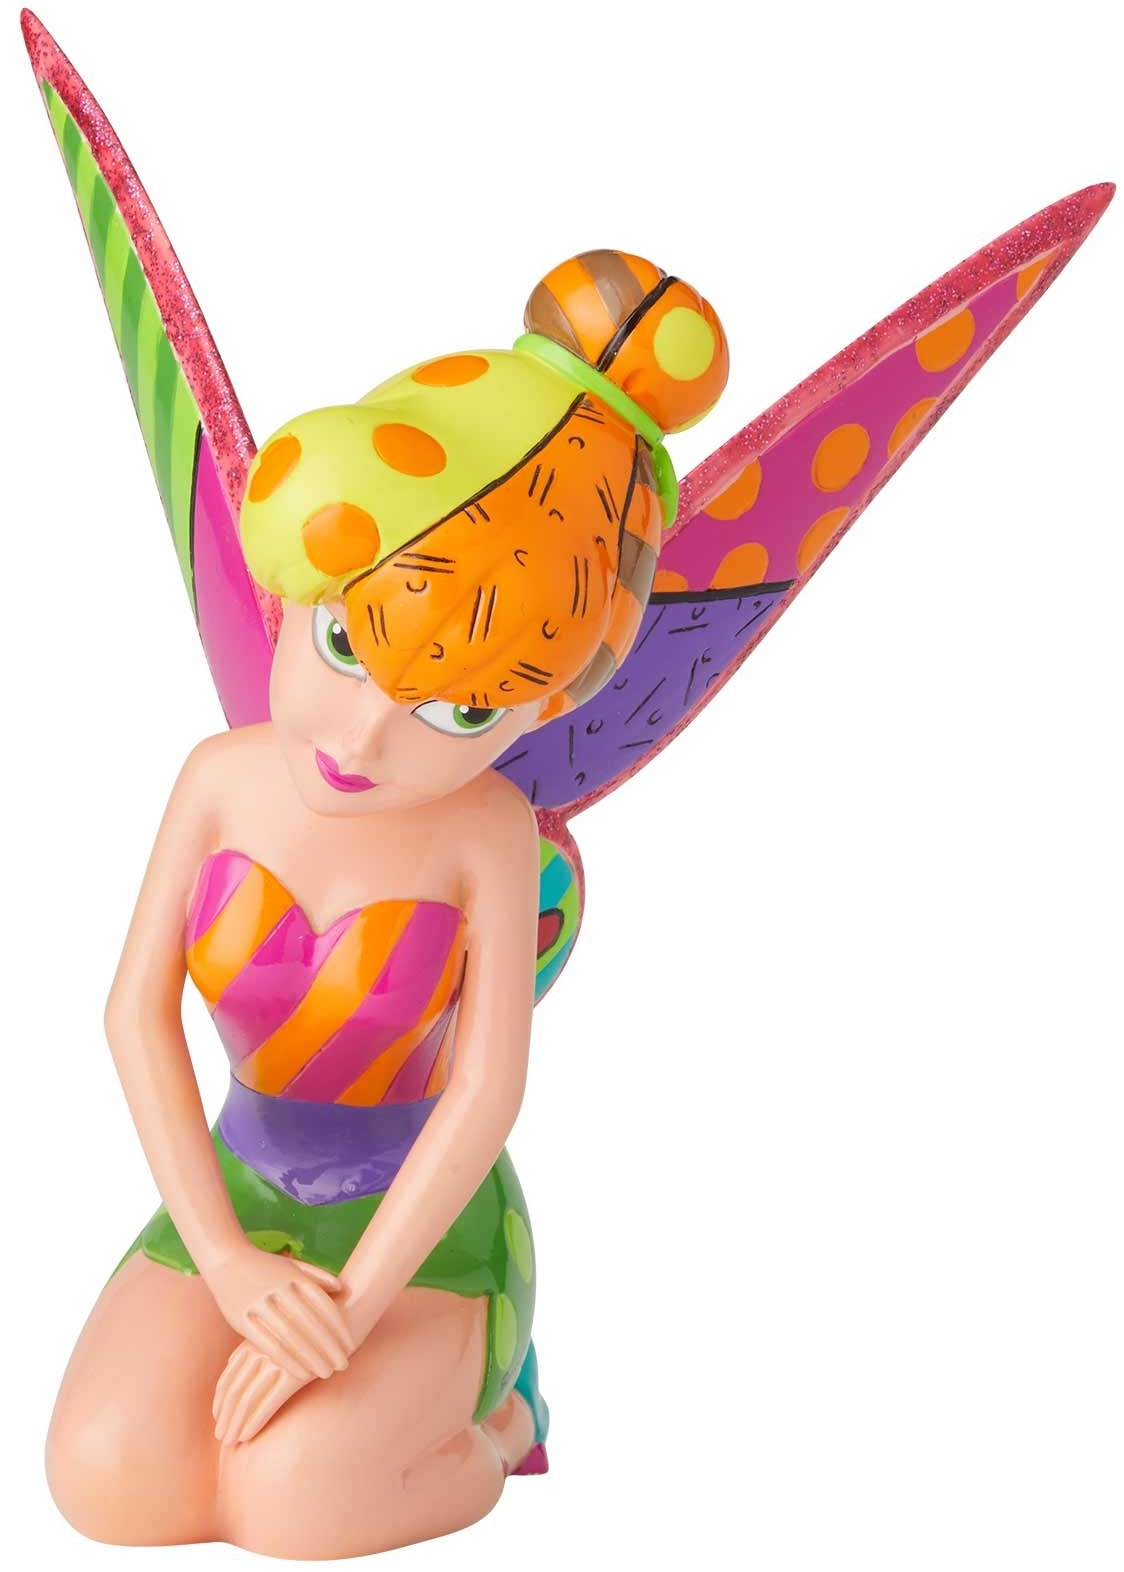 Disney by Britto 6003344 Tinker Bell 6